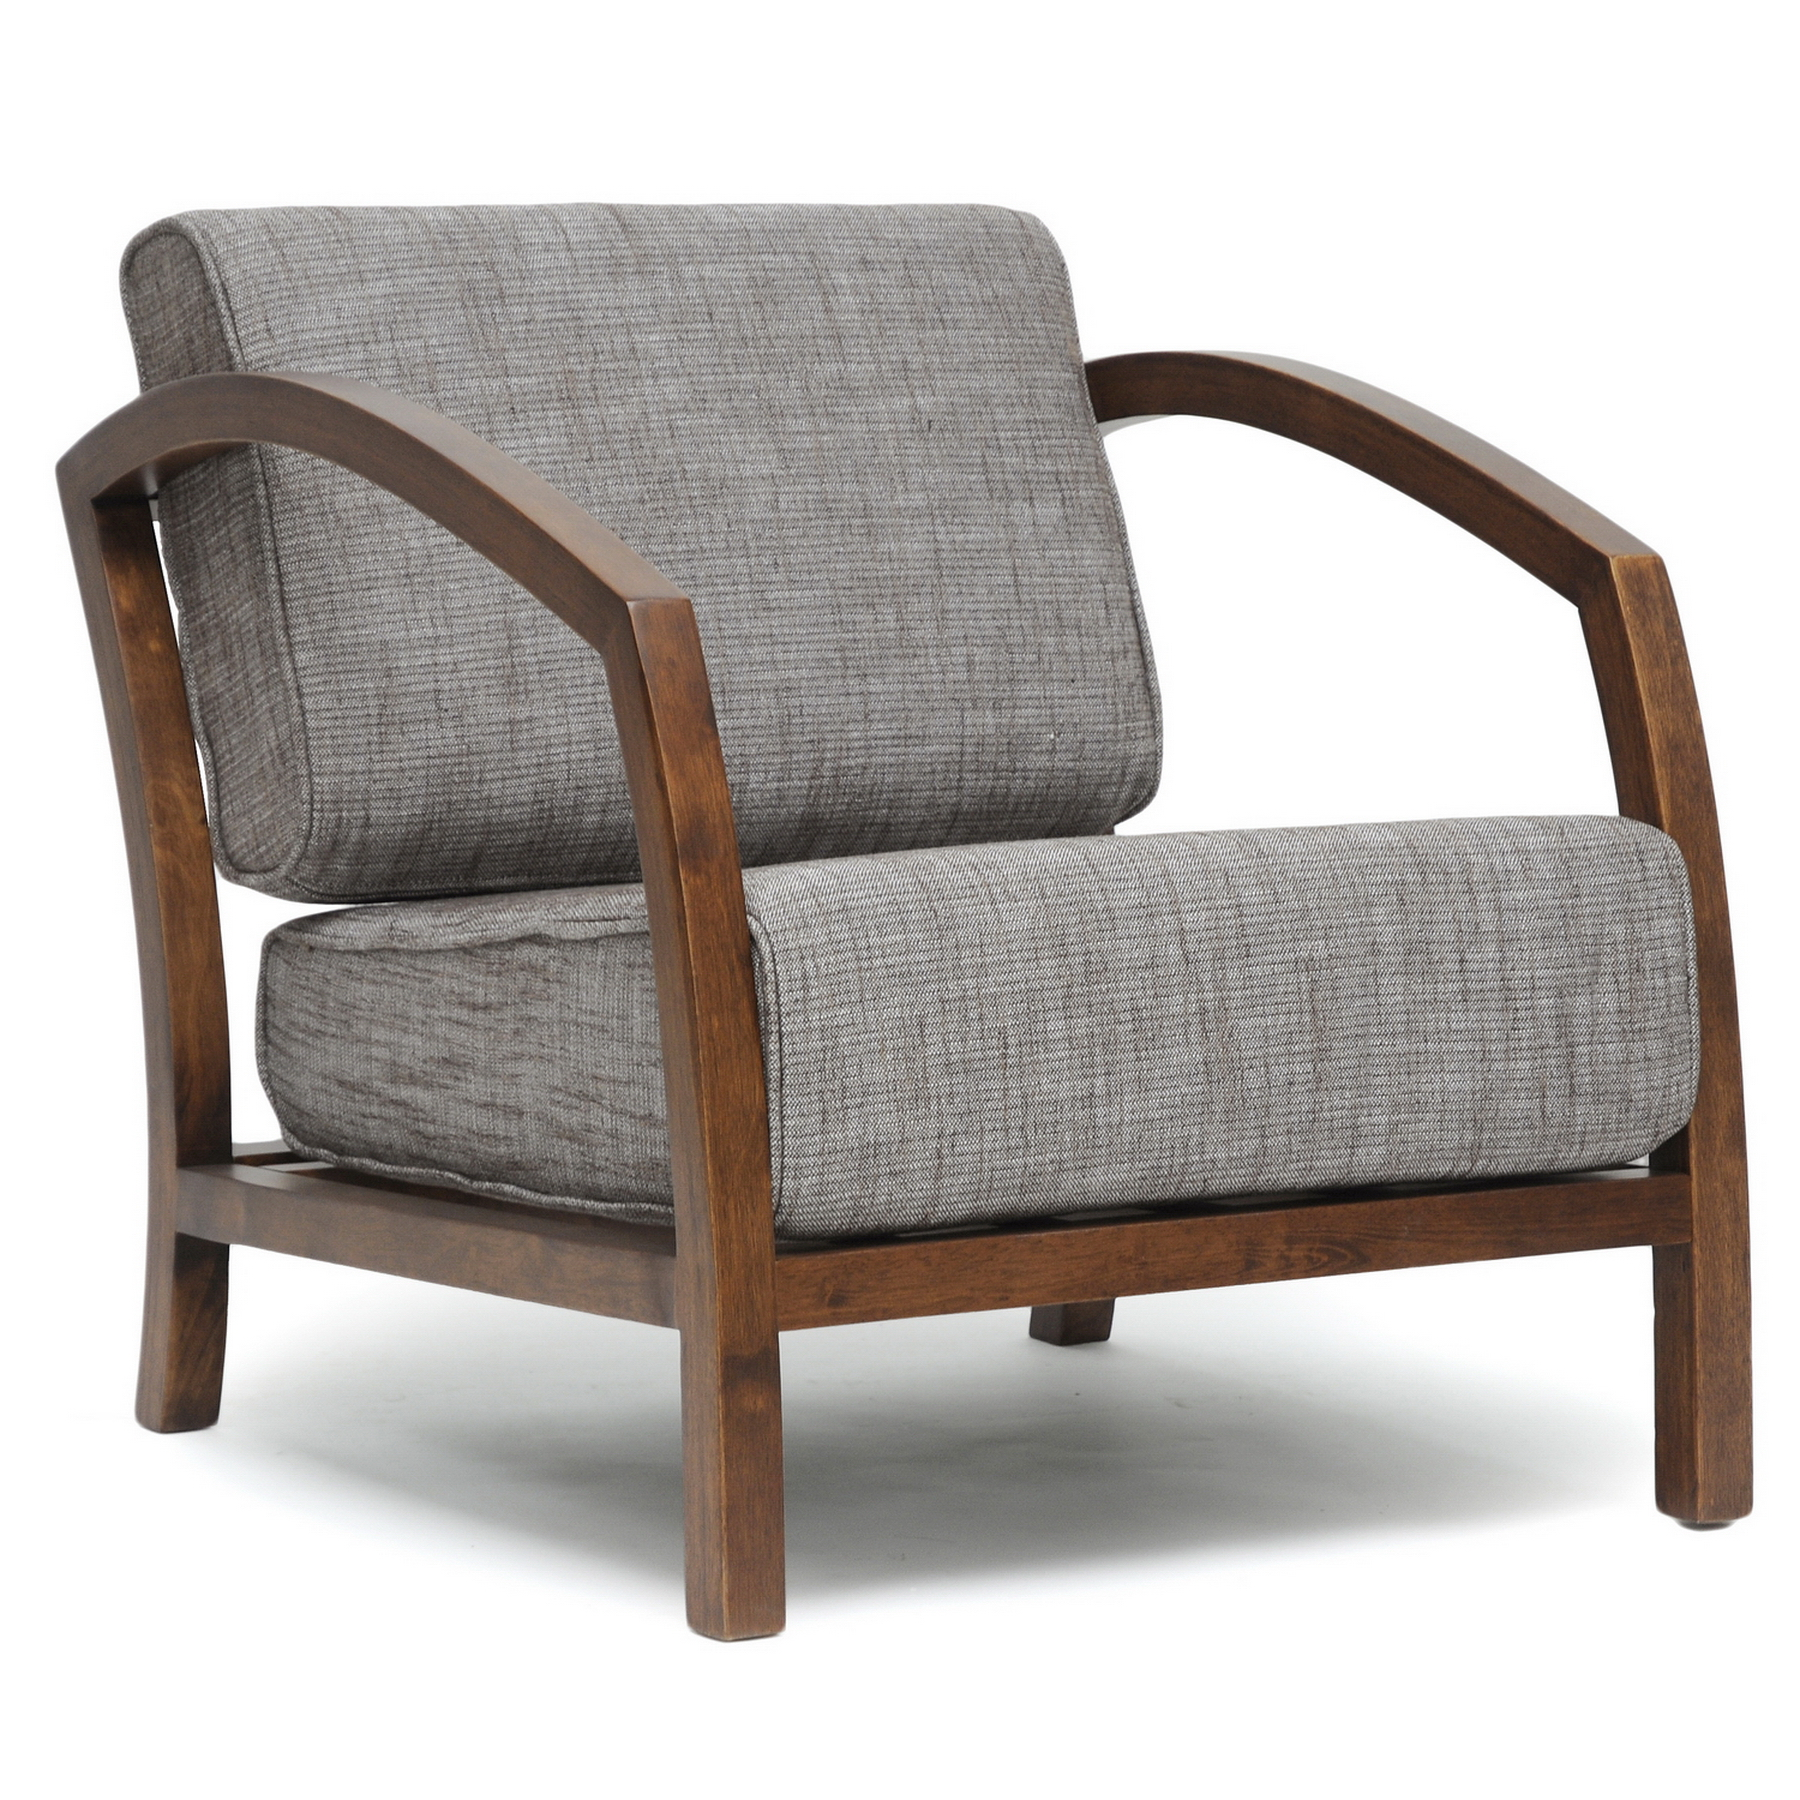 Homesense Accent Chairs Baxton Studio Velda Brown Modern Accent Chair Home